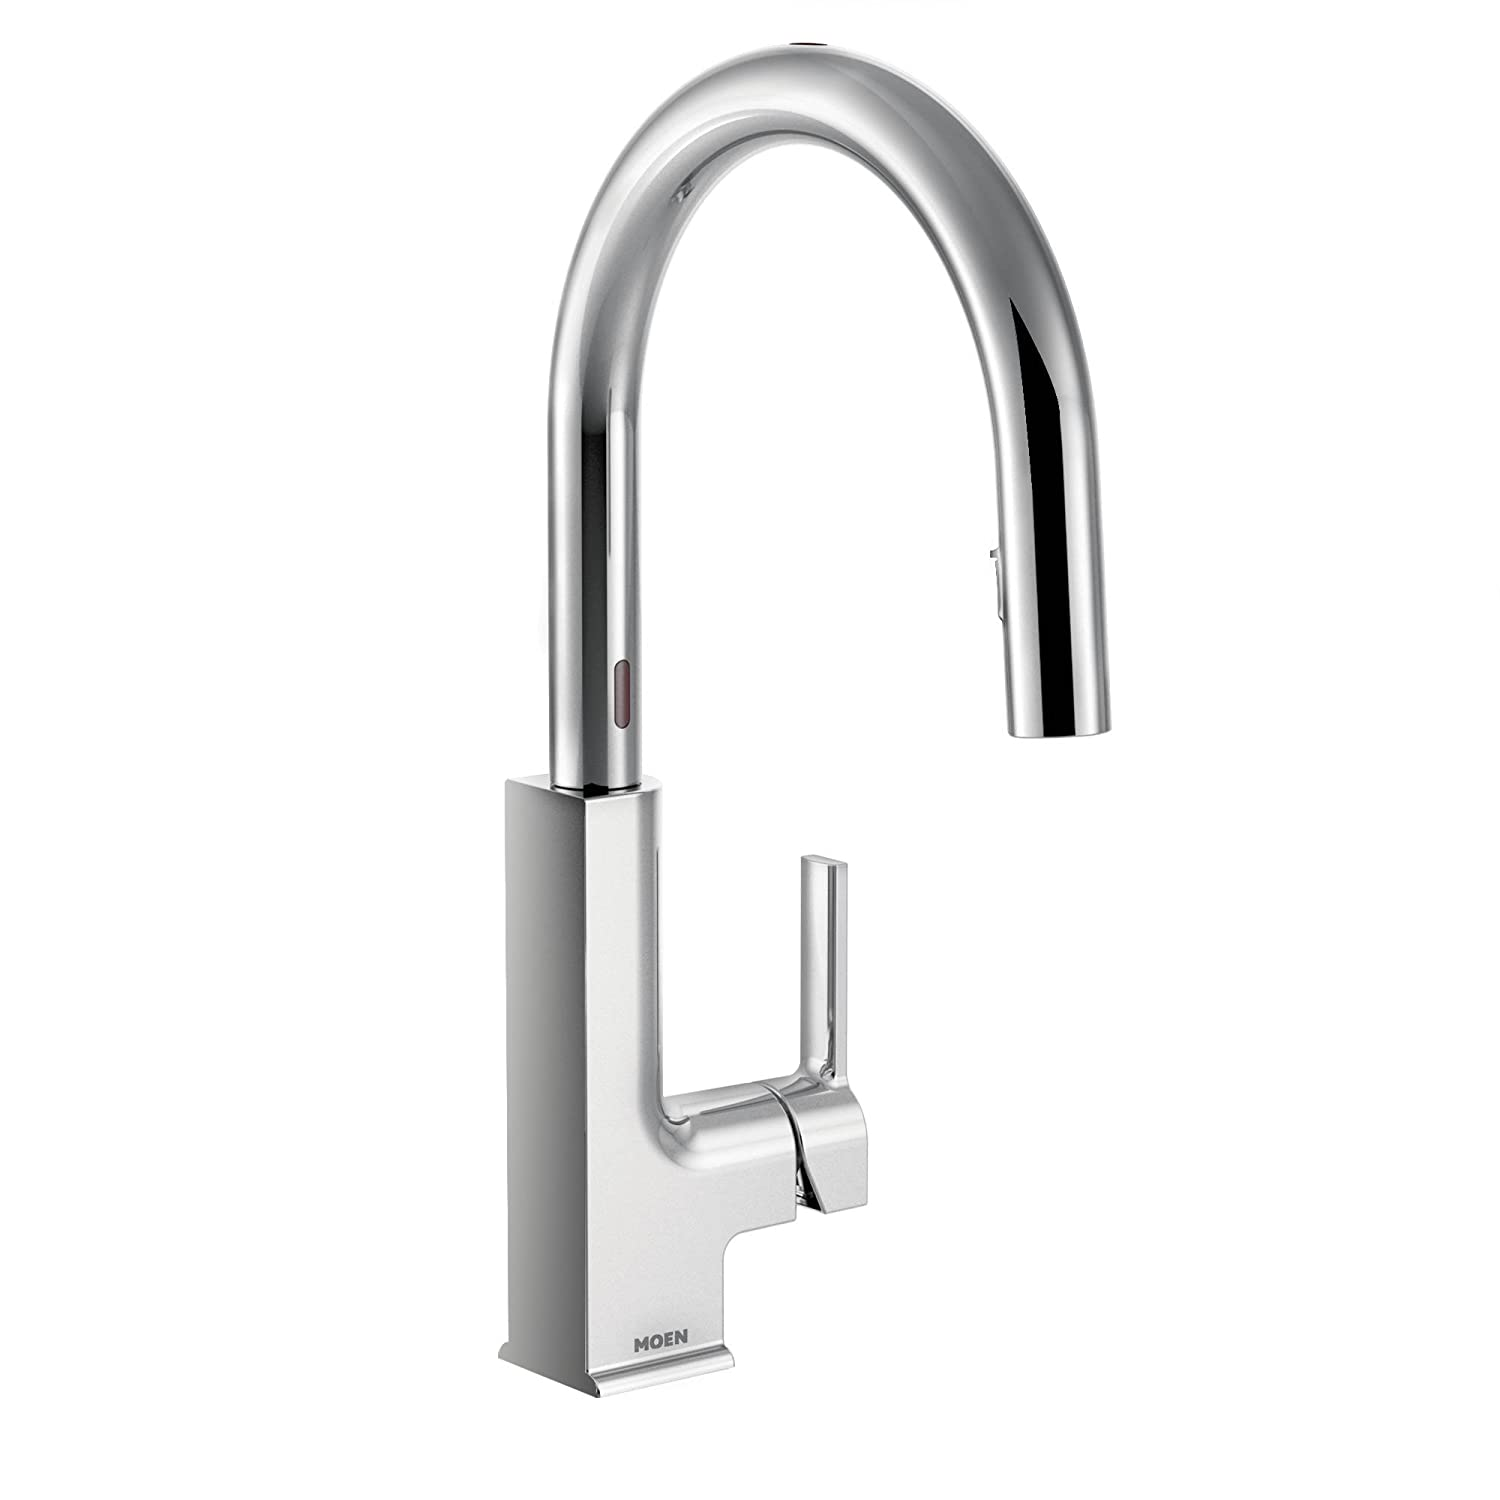 chrome moen faucet spray from lindley com side with the collection sink kitchen